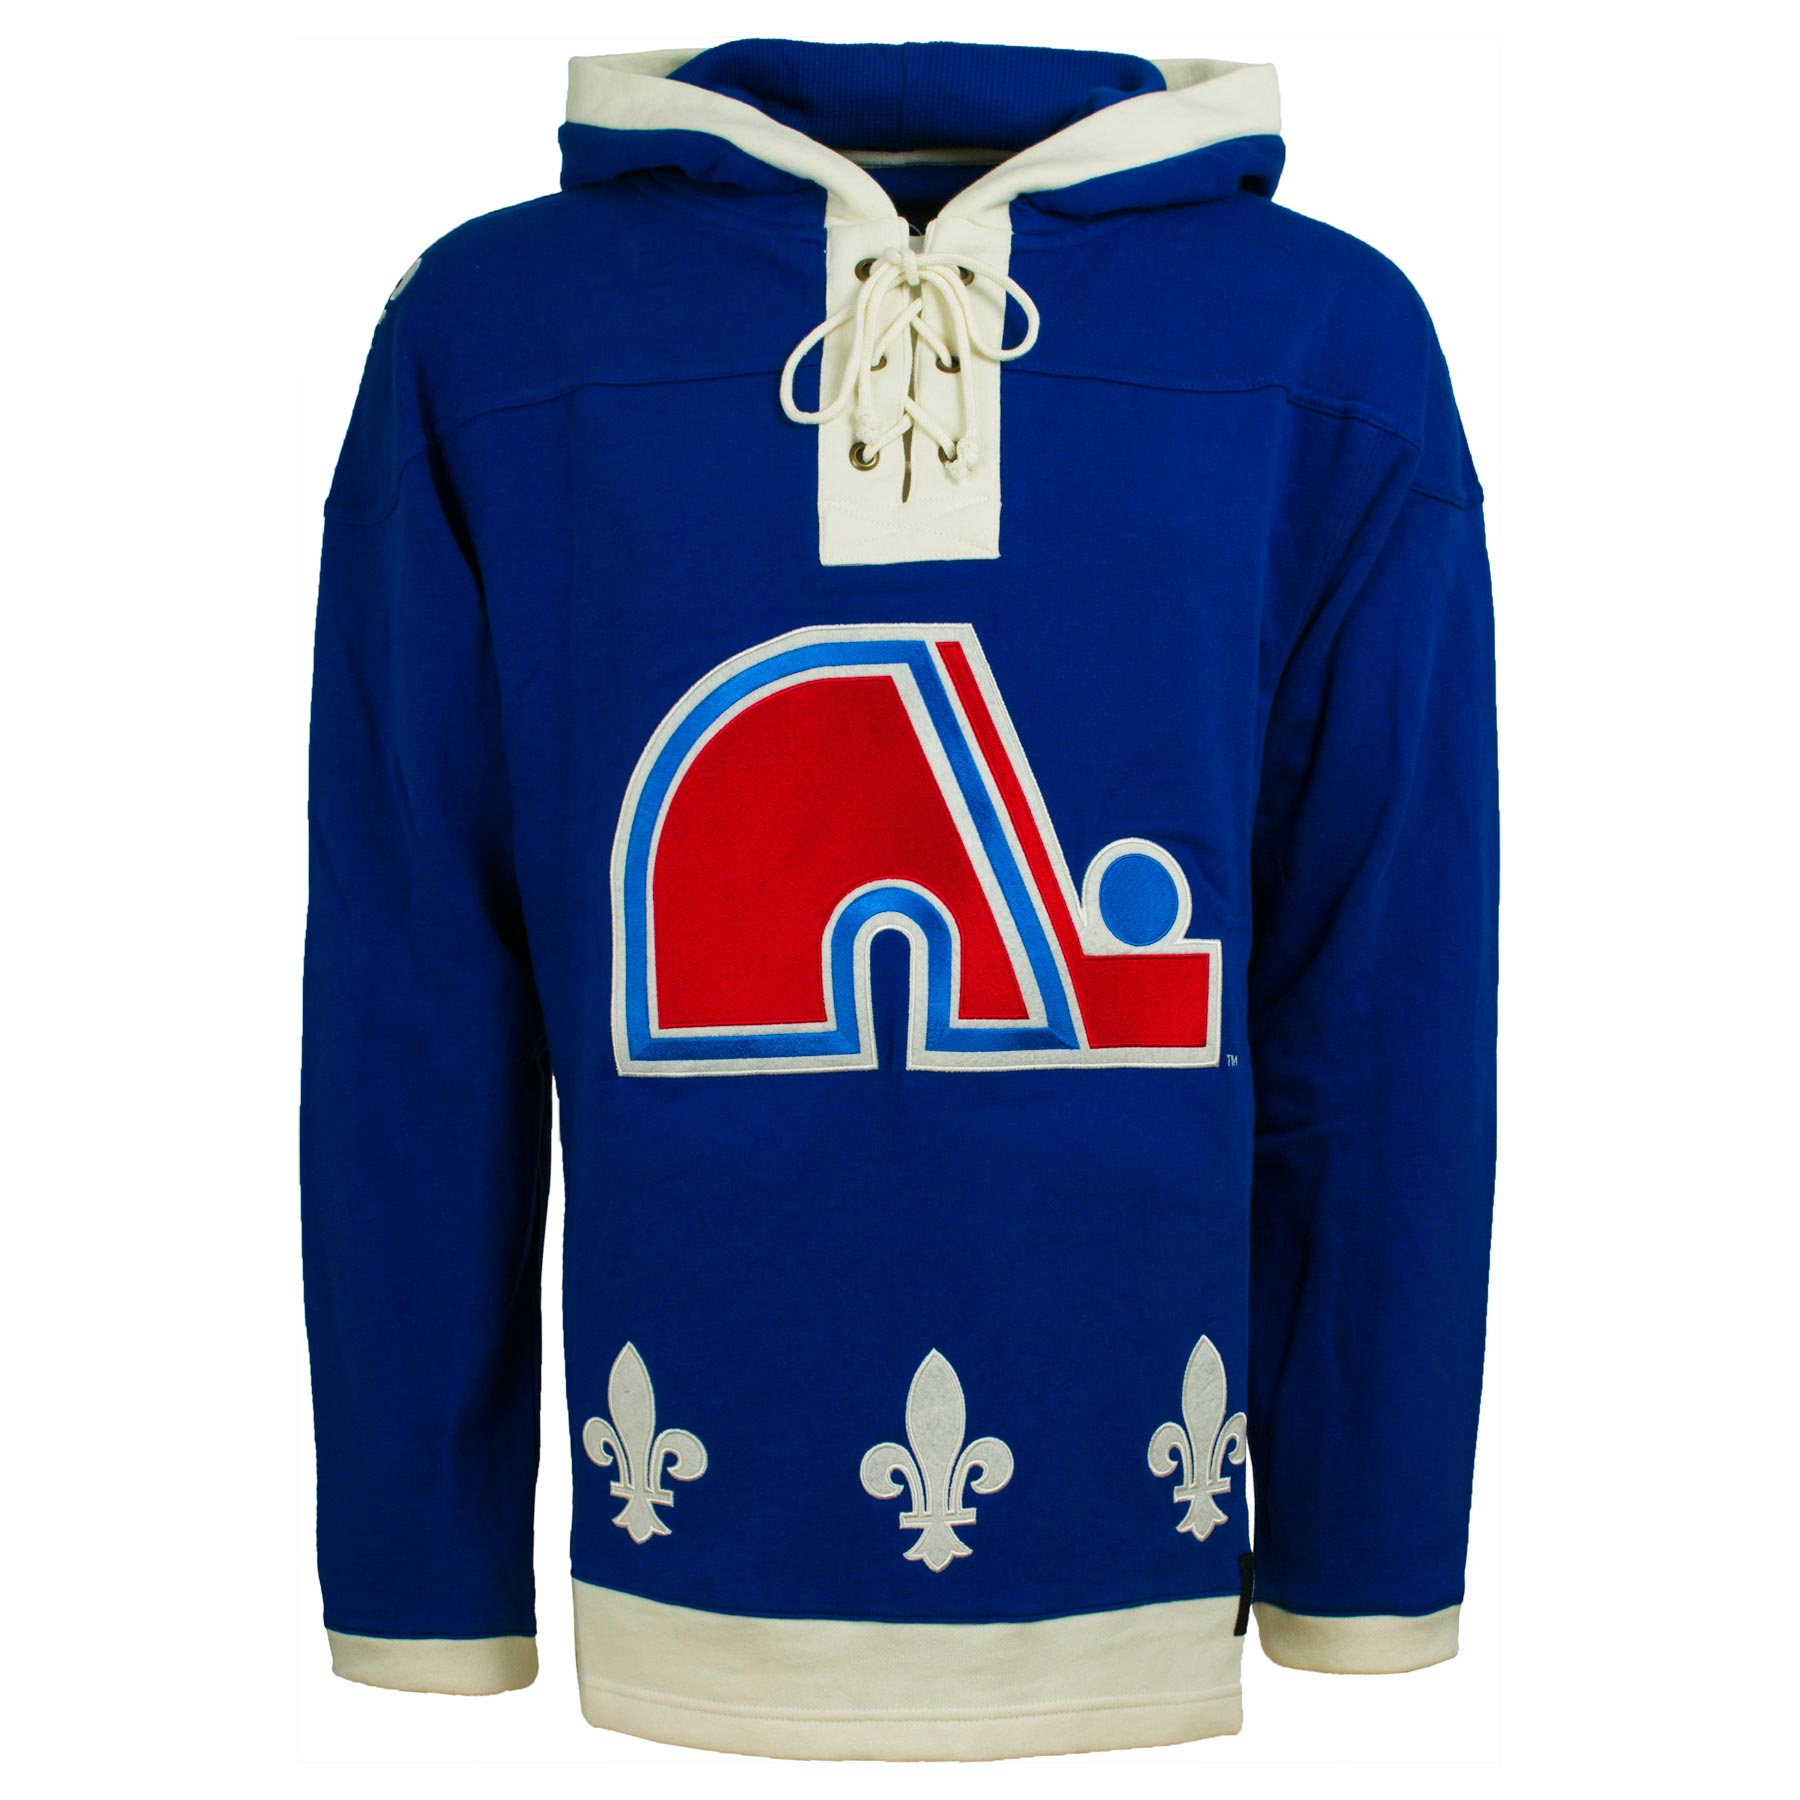 330c53dd4 Quebec Nordiques NHL  47 Heavyweight Jersey Lacer Hoodie. Hover to Zoom